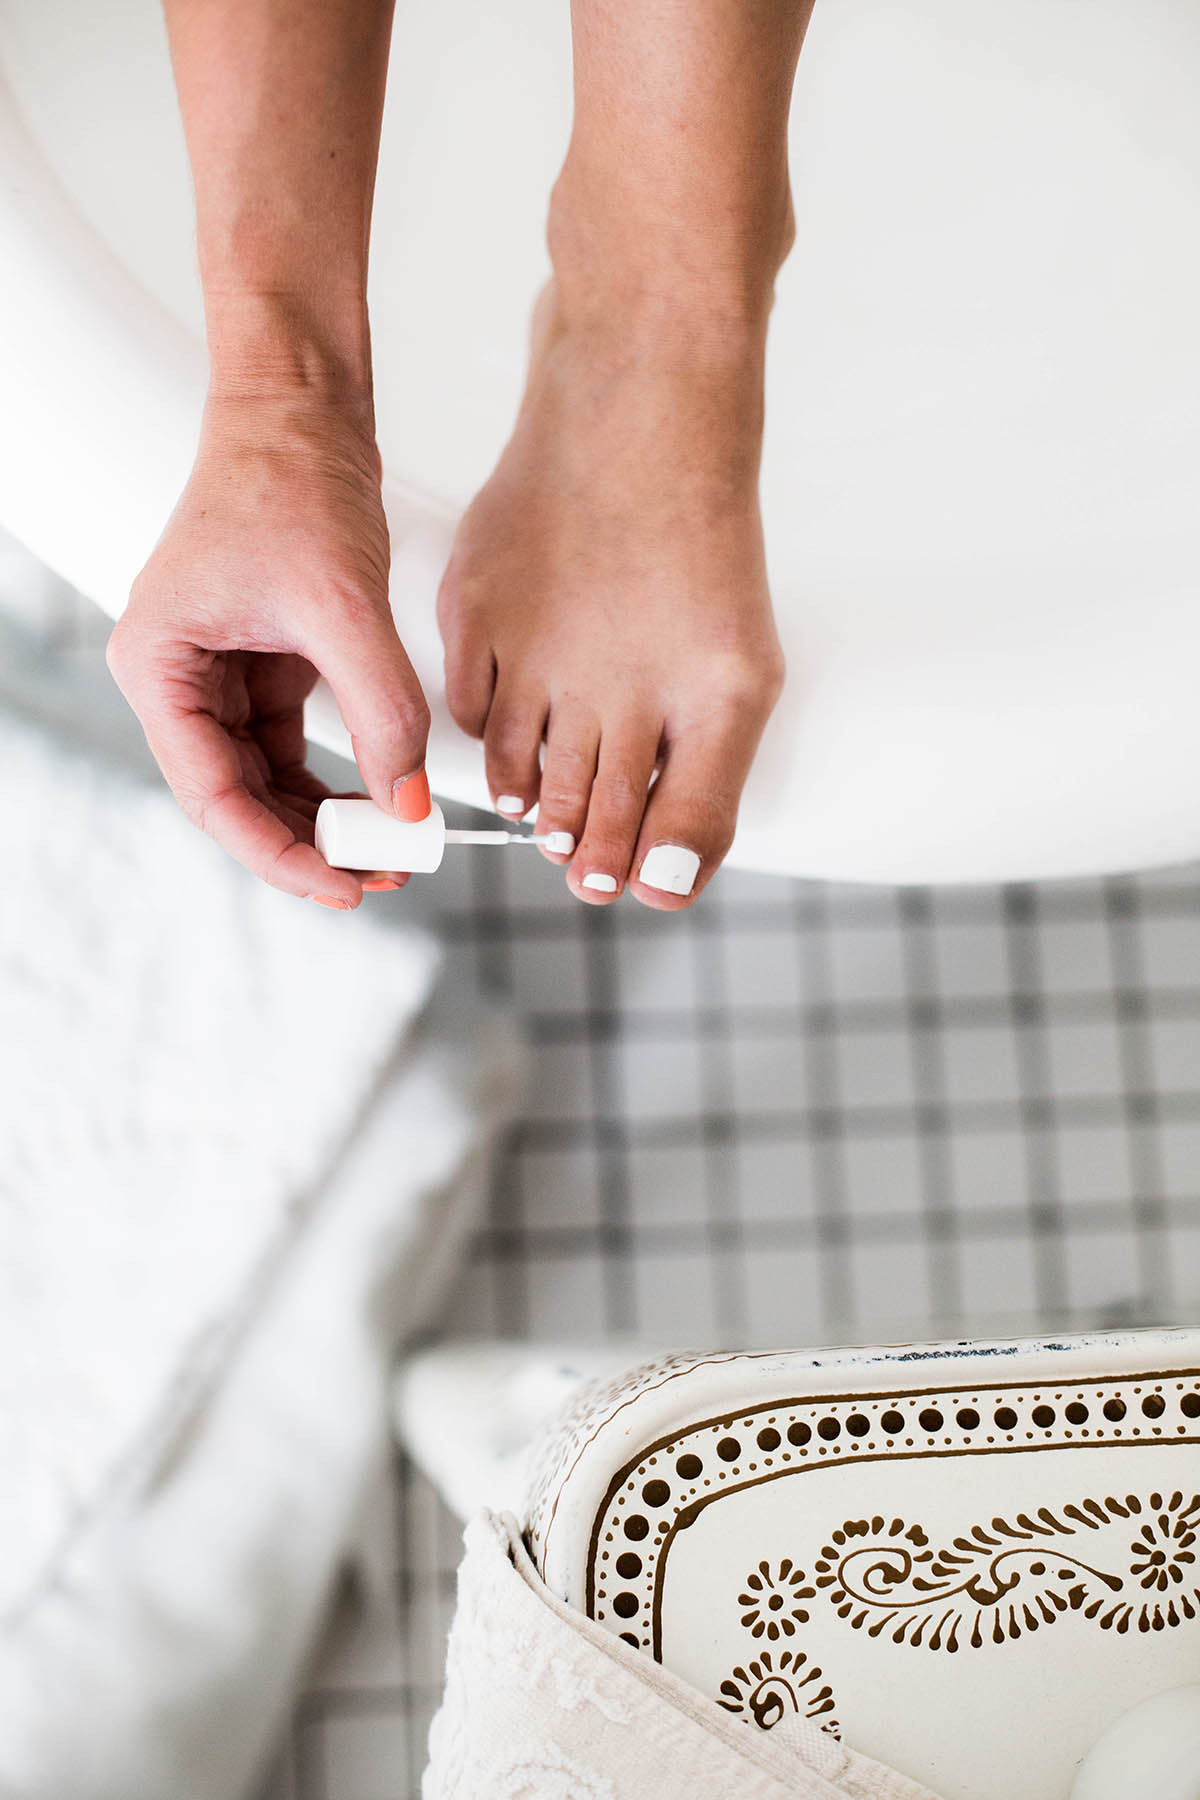 5 Steps to an At-Home Pedicure